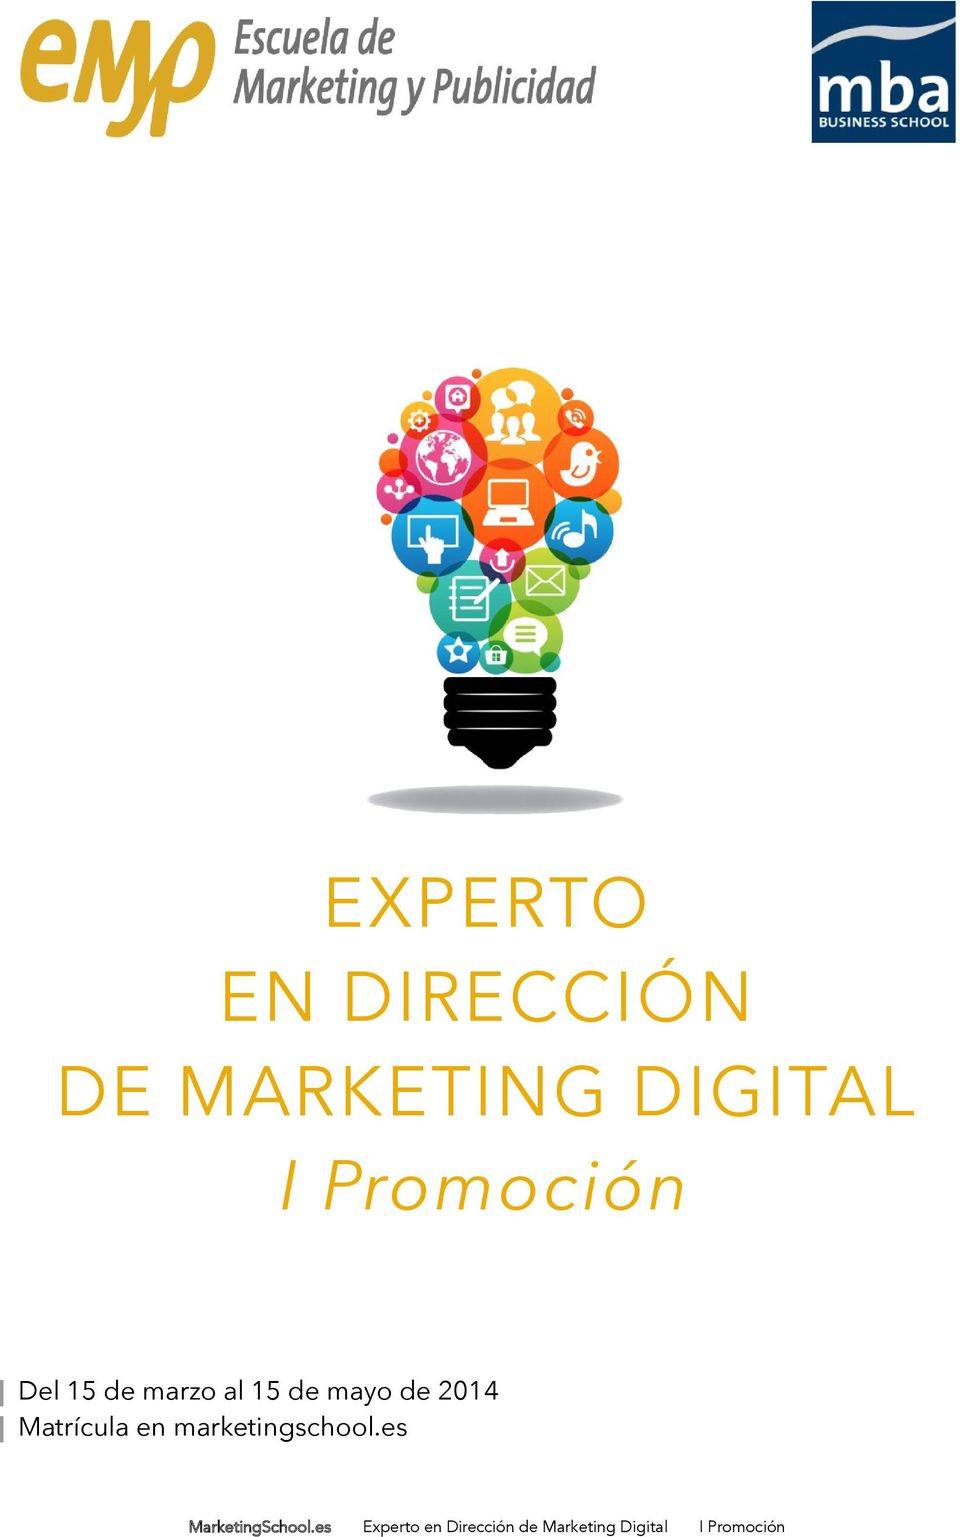 Matrícula en marketingschool.es MarketingSchool.